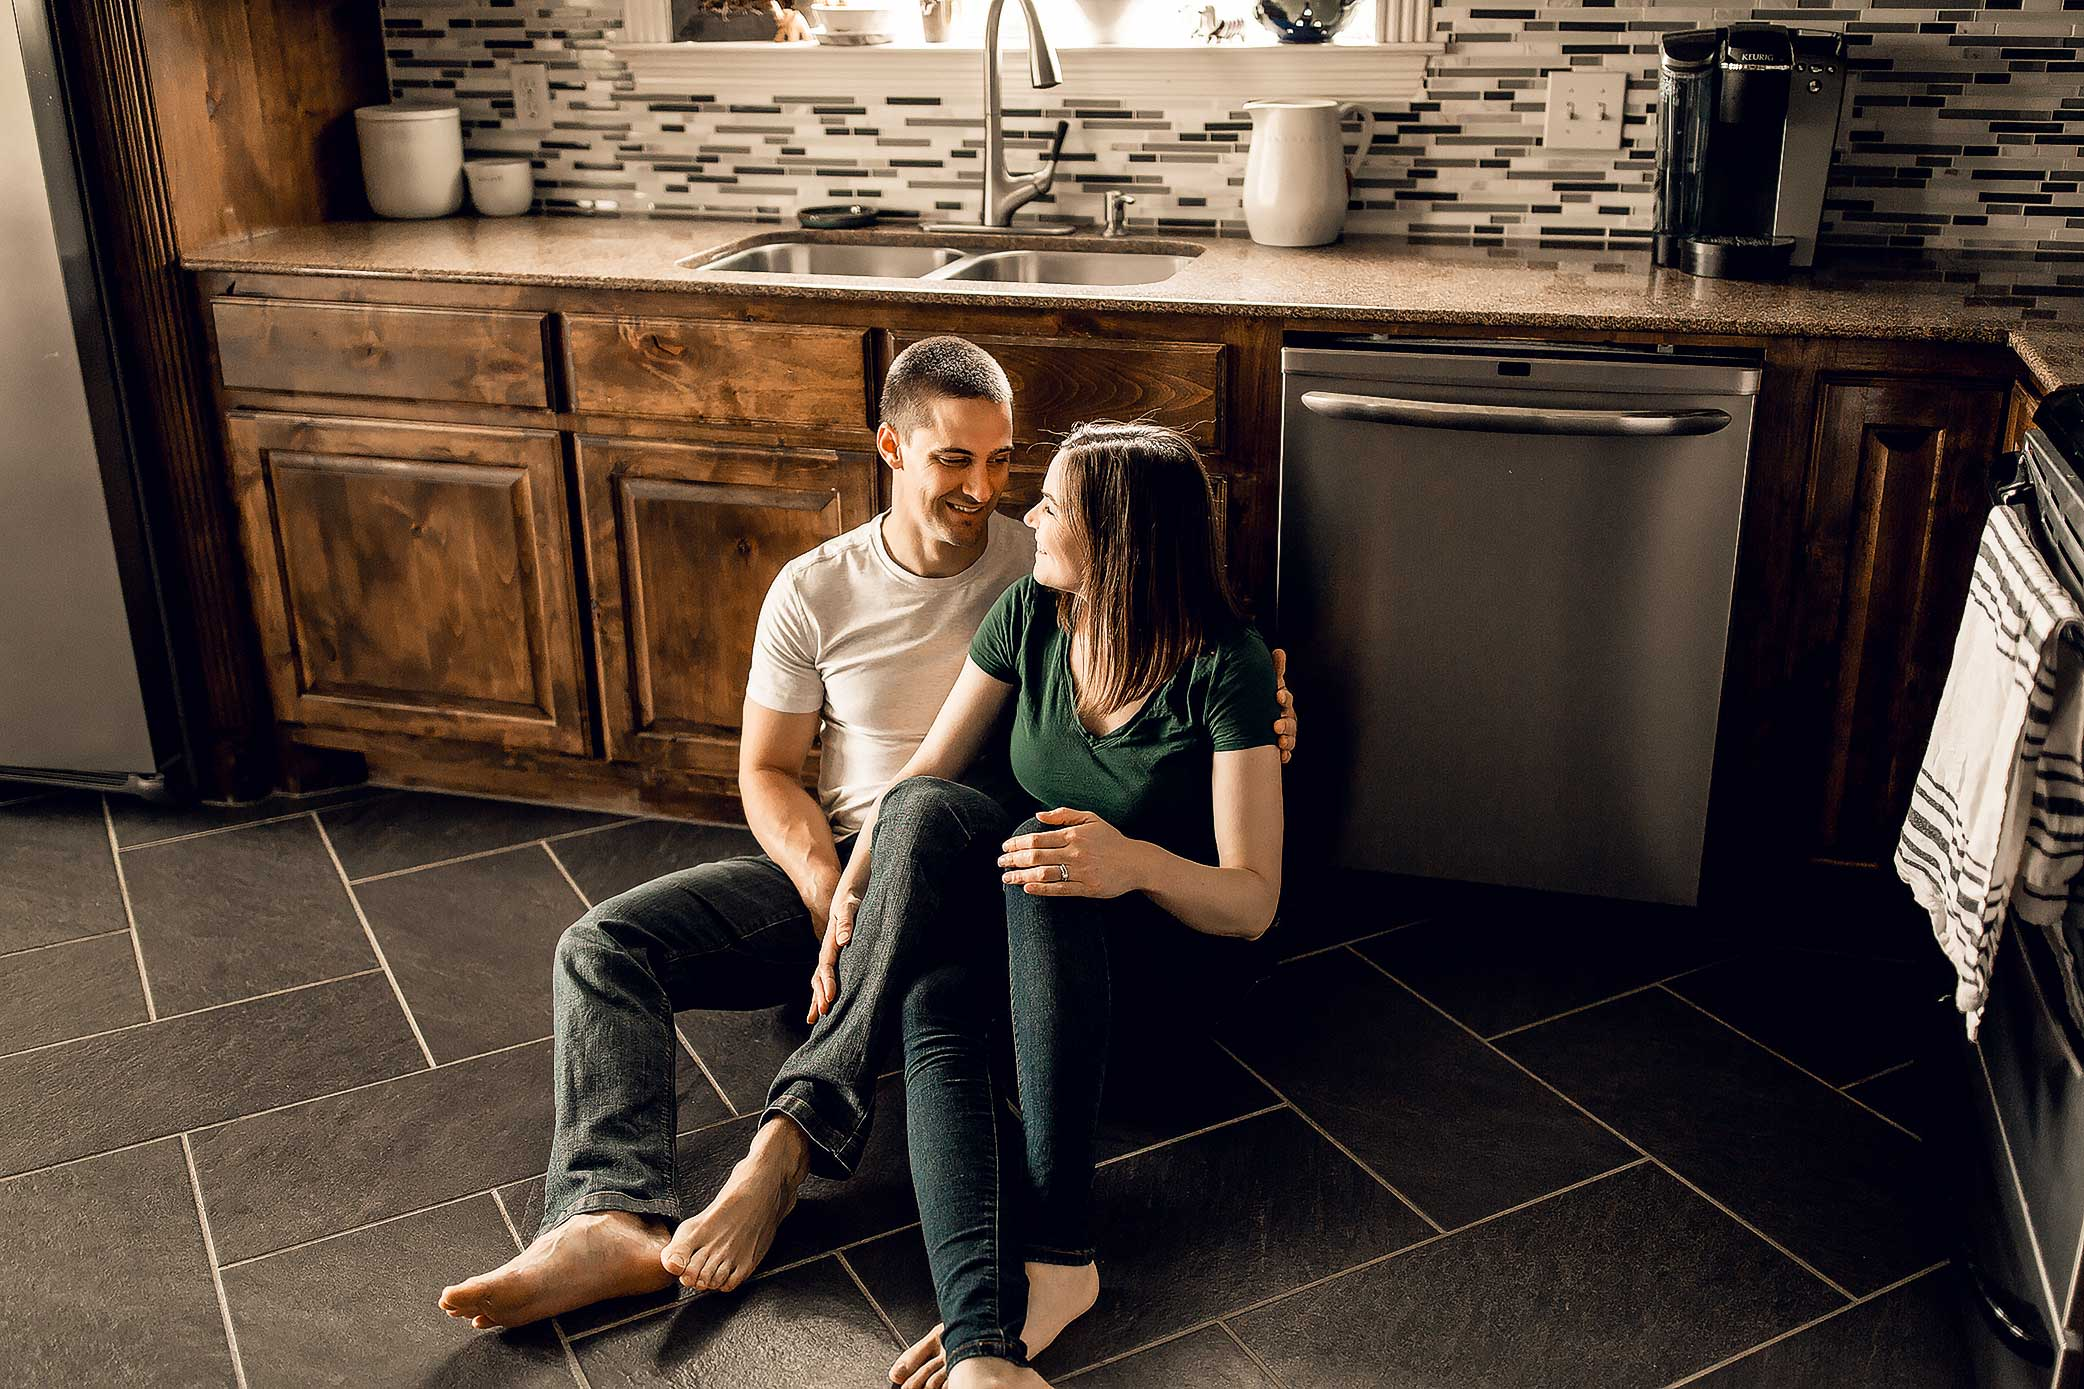 shelby-schiller-photography-lifestyle-home-couples-session-south-college-station-1.jpg